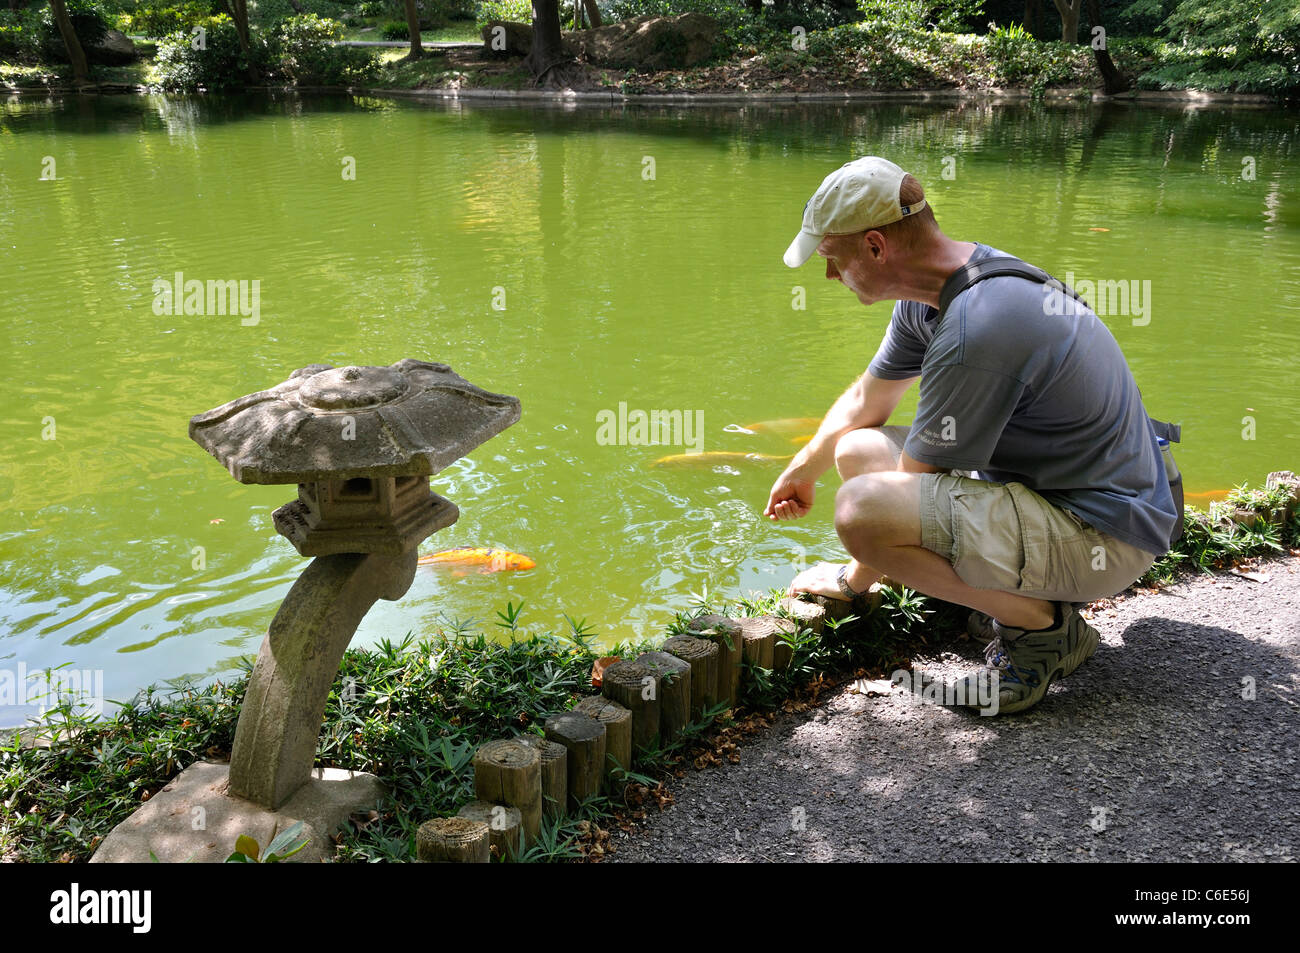 Japanese garden fort worth texas usa man feeding koi for How much are koi fish worth